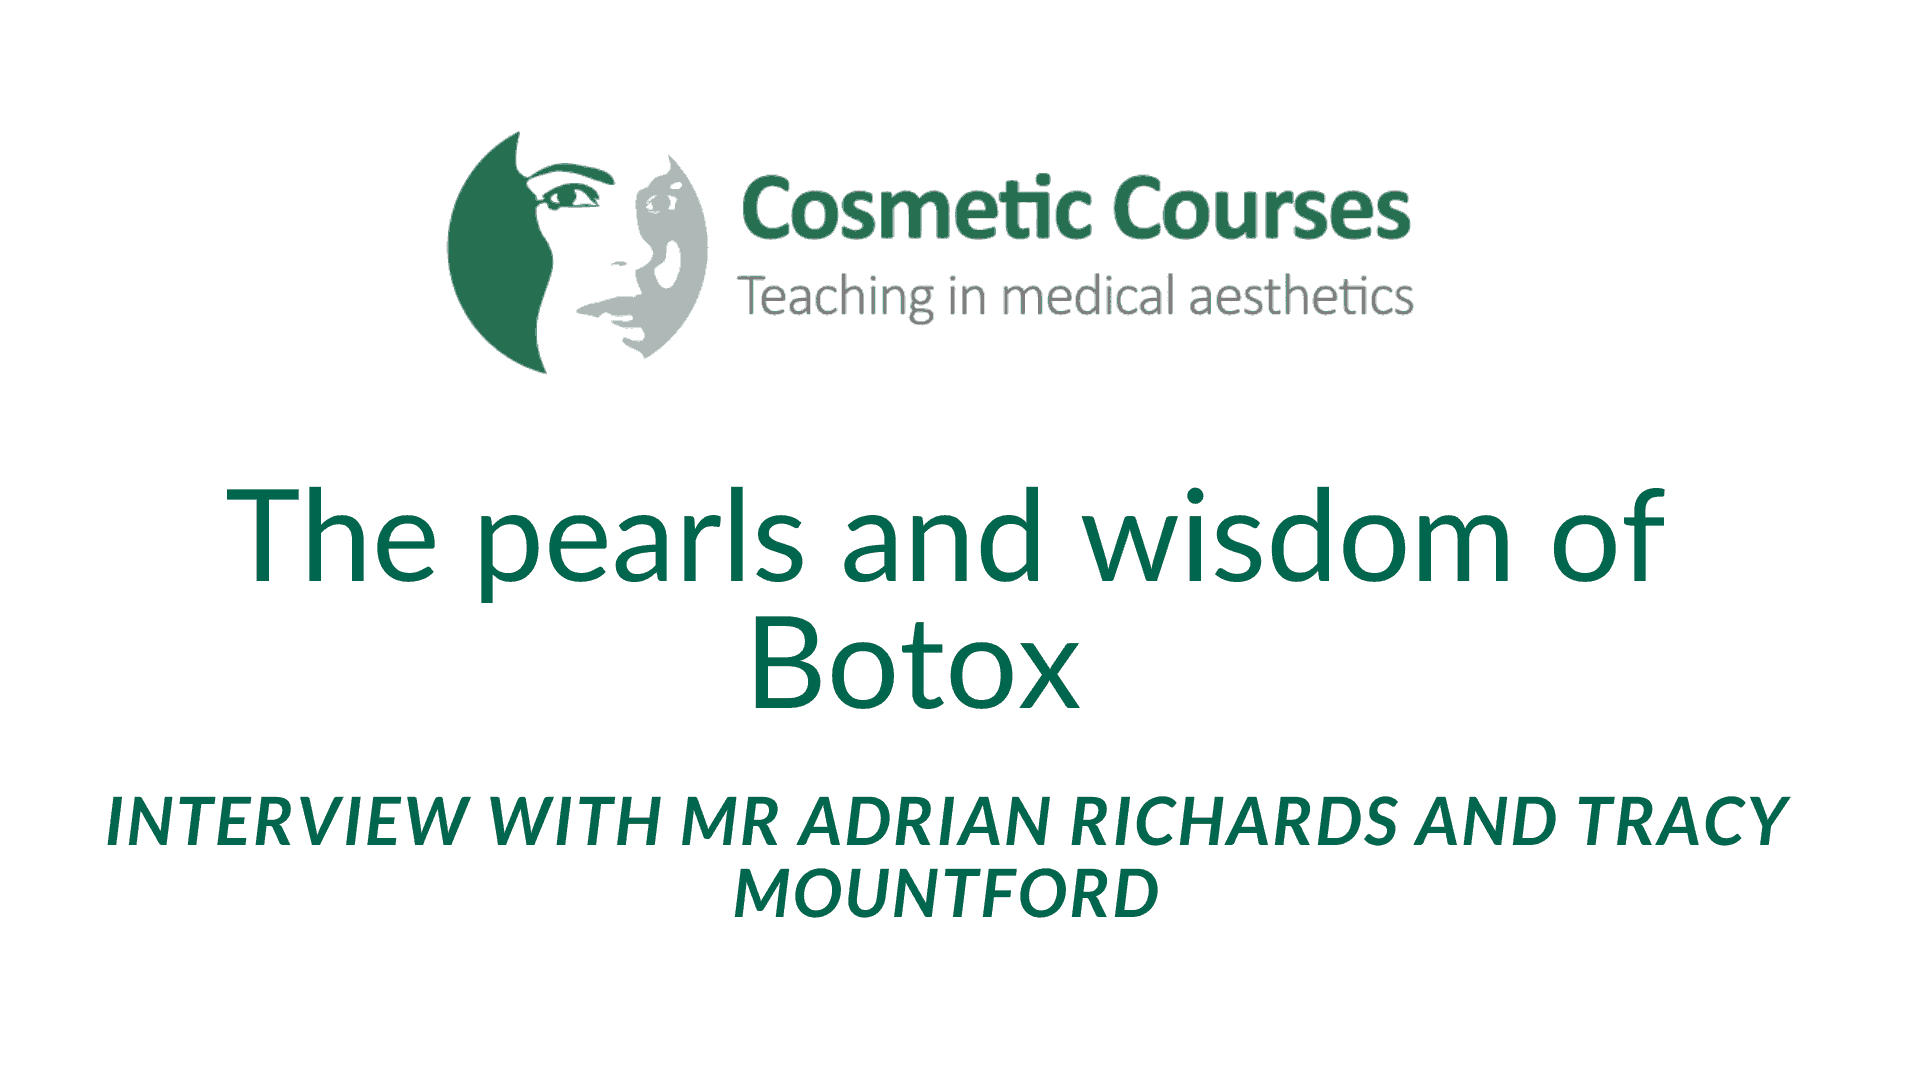 The pearls and wisdom of Botox with Mr Adrian Richards of Cosmetic Courses and Tracy Mountford (2)